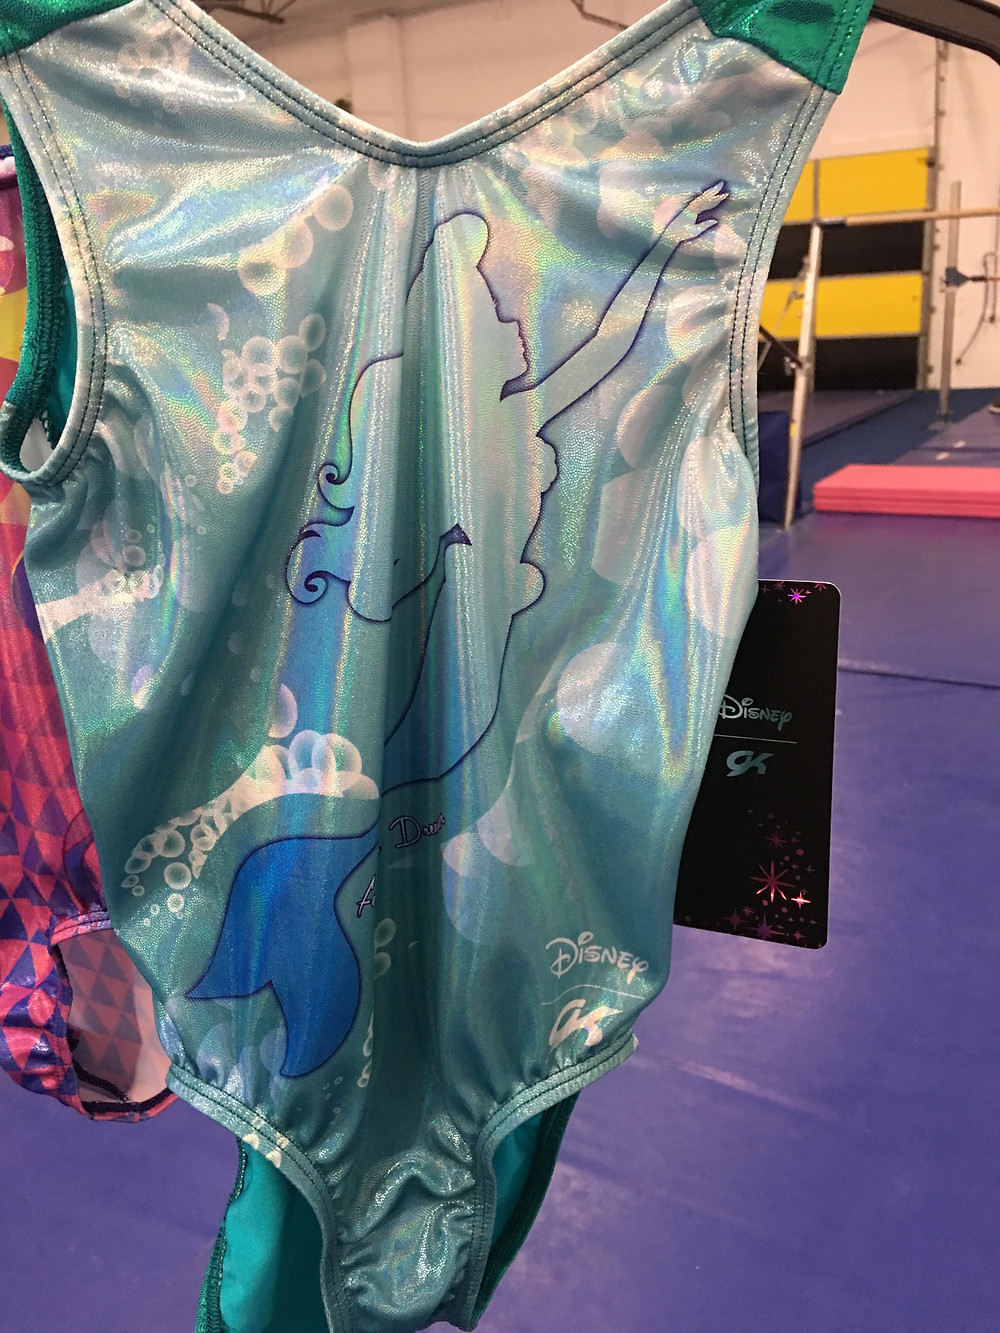 Learn some aerials dressed like Ariel.